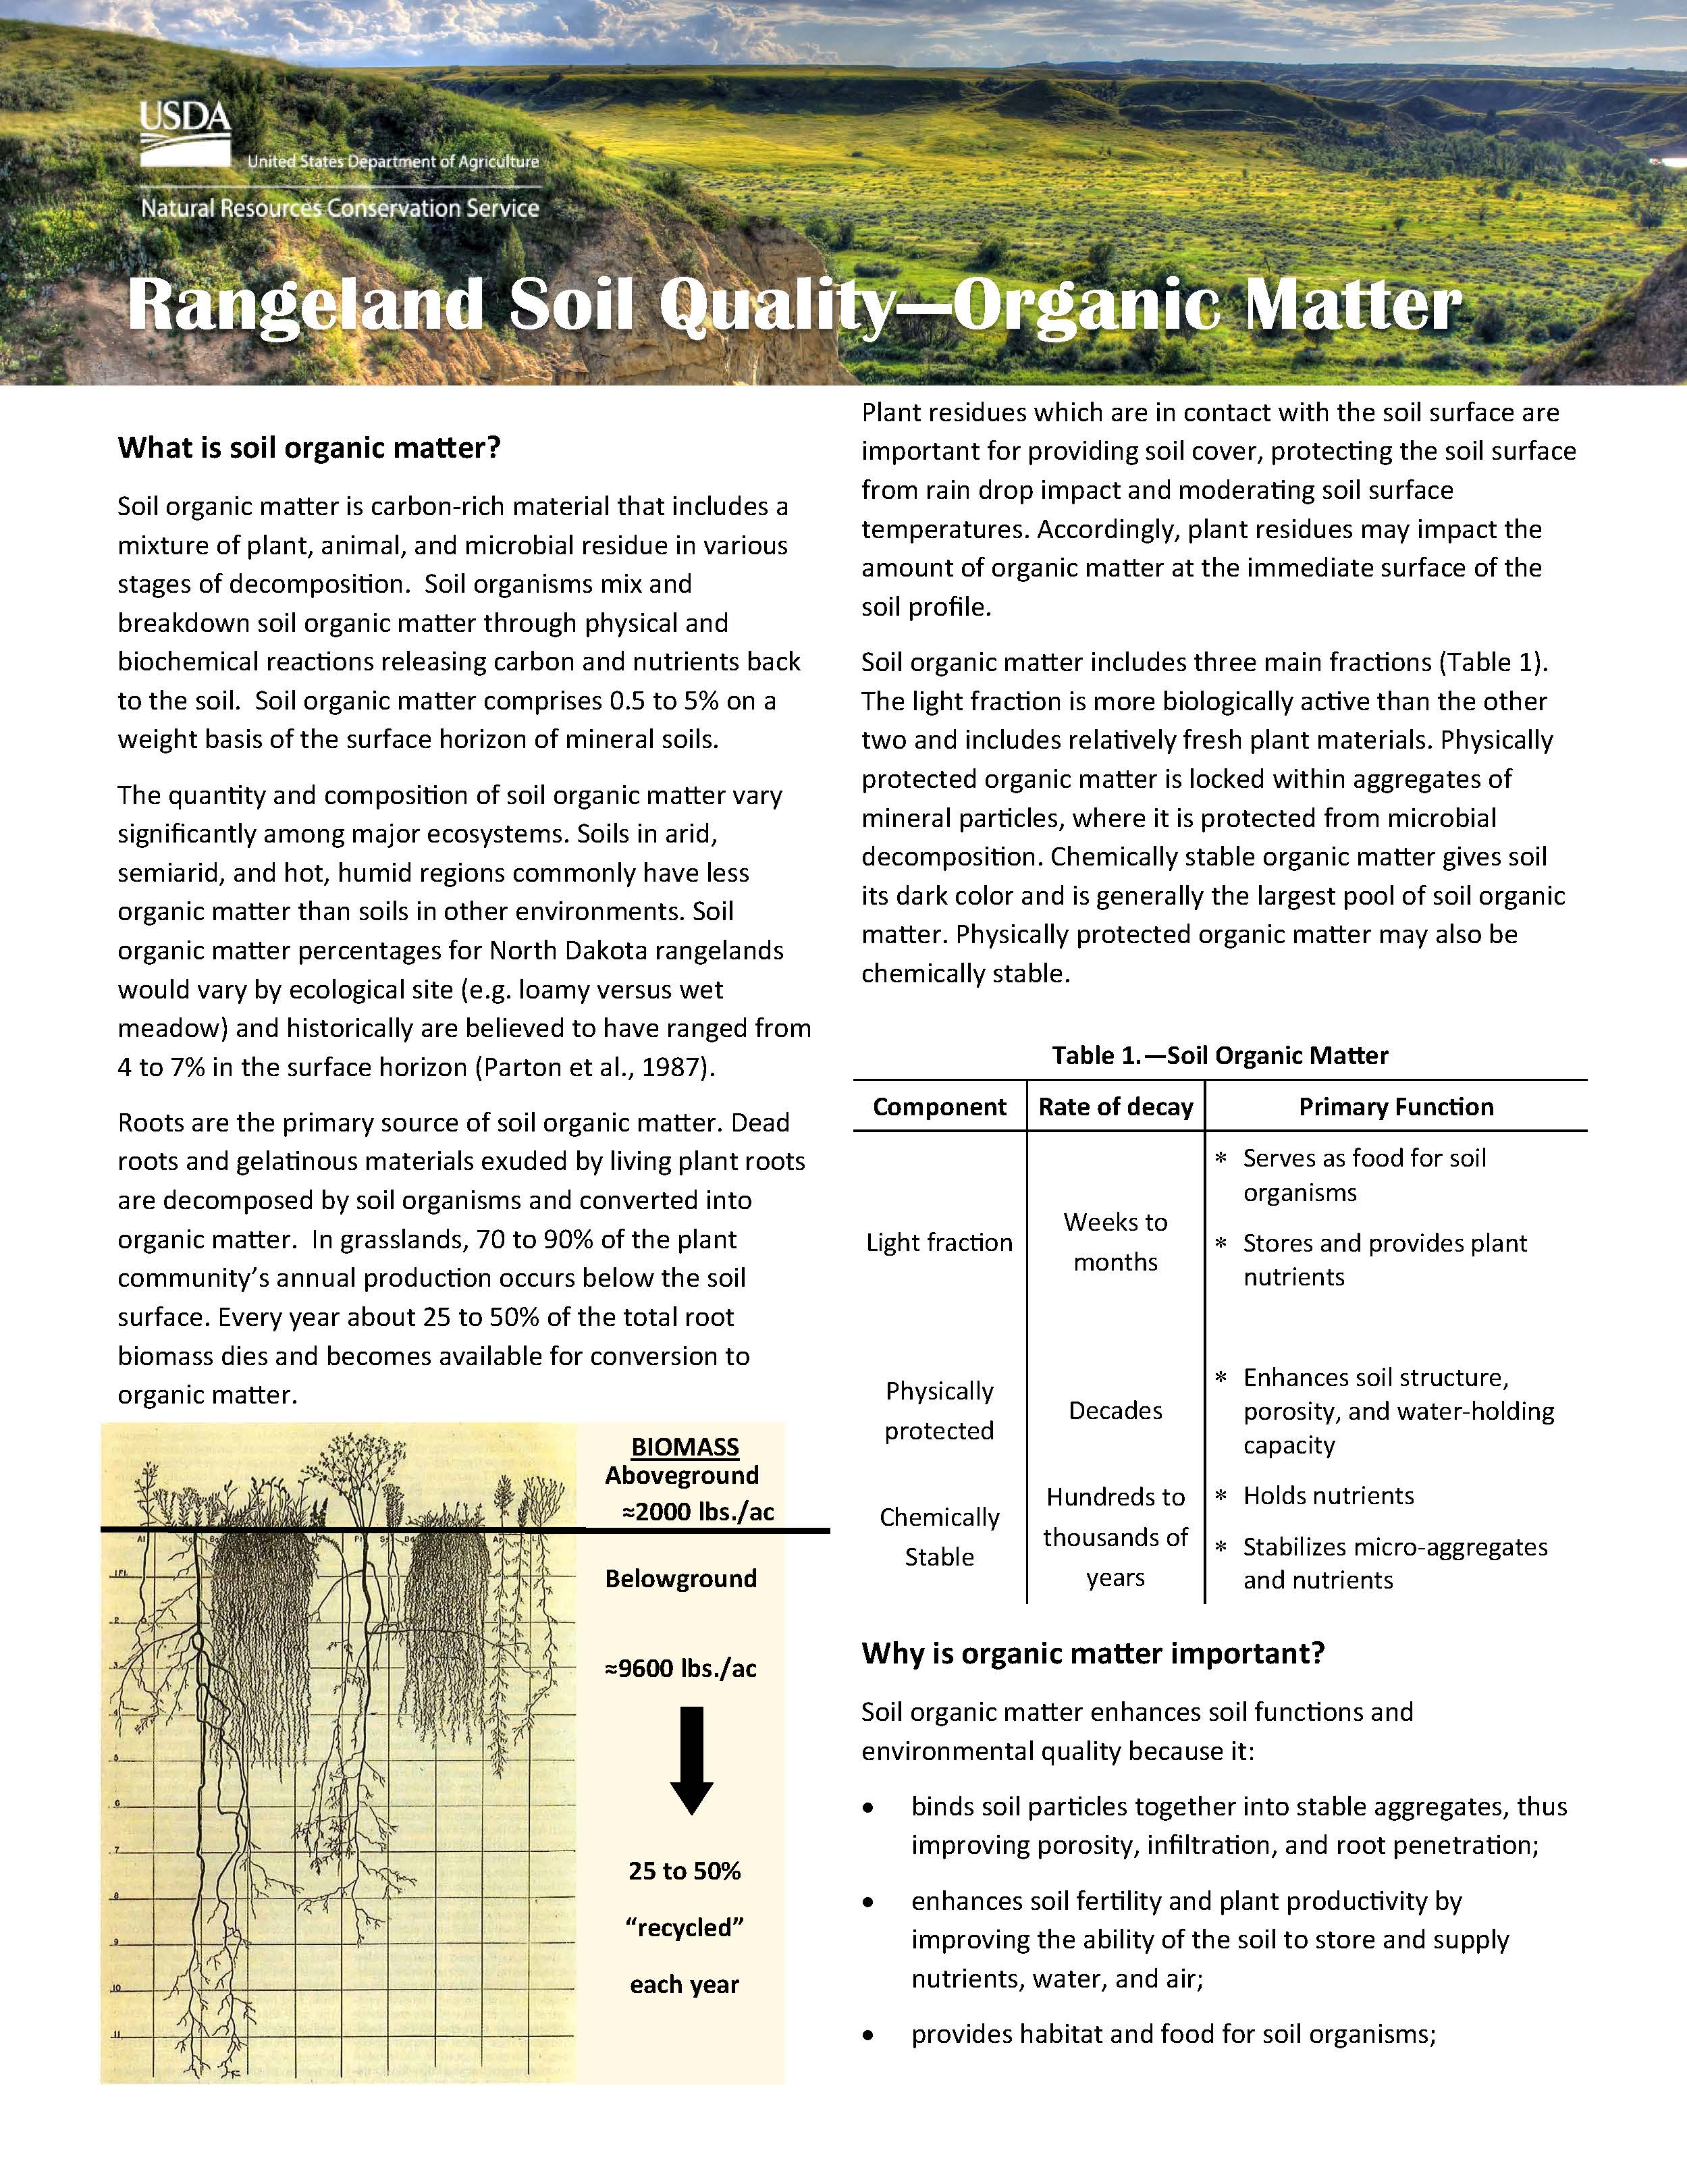 Nd rangeland soil health fact sheets nrcs north dakota for Soil quality indicators